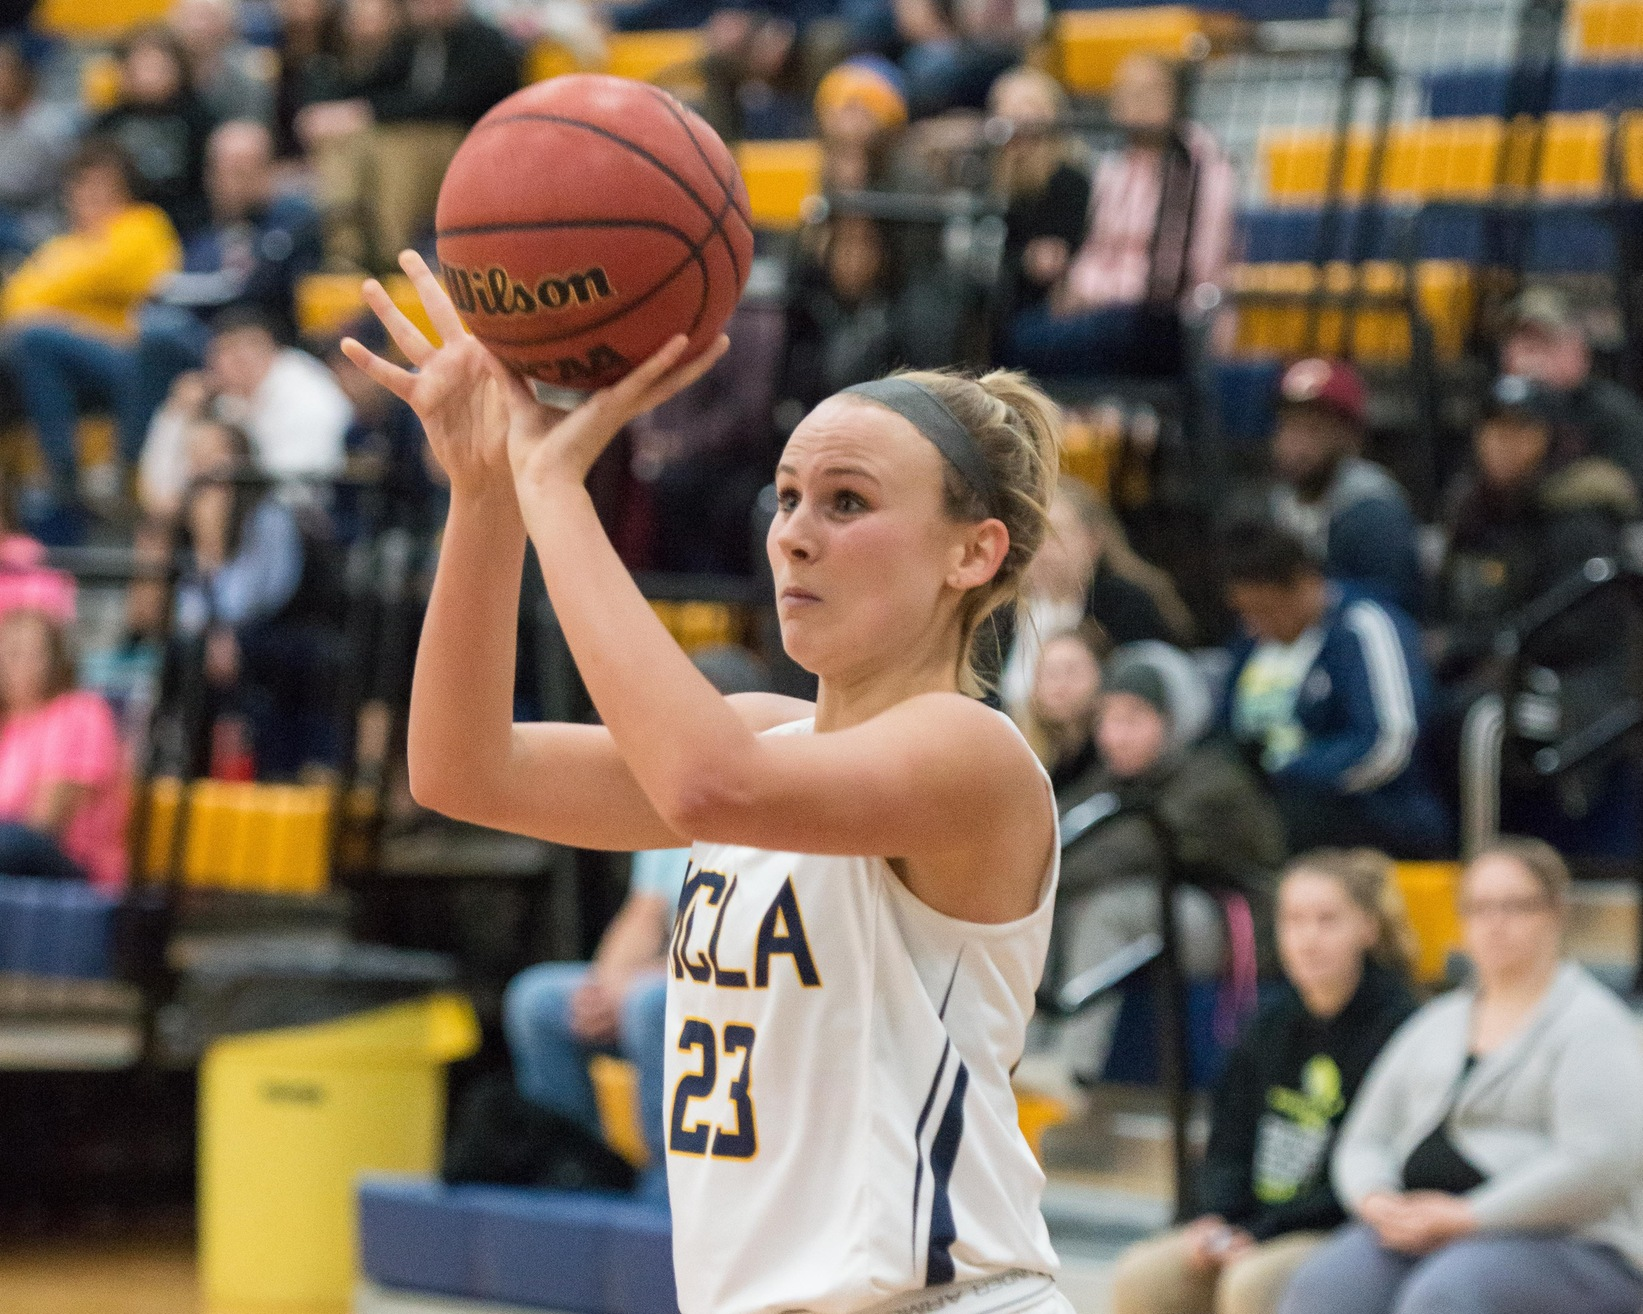 Second half dooms MCLA women in loss to Babson at Naismith tournament